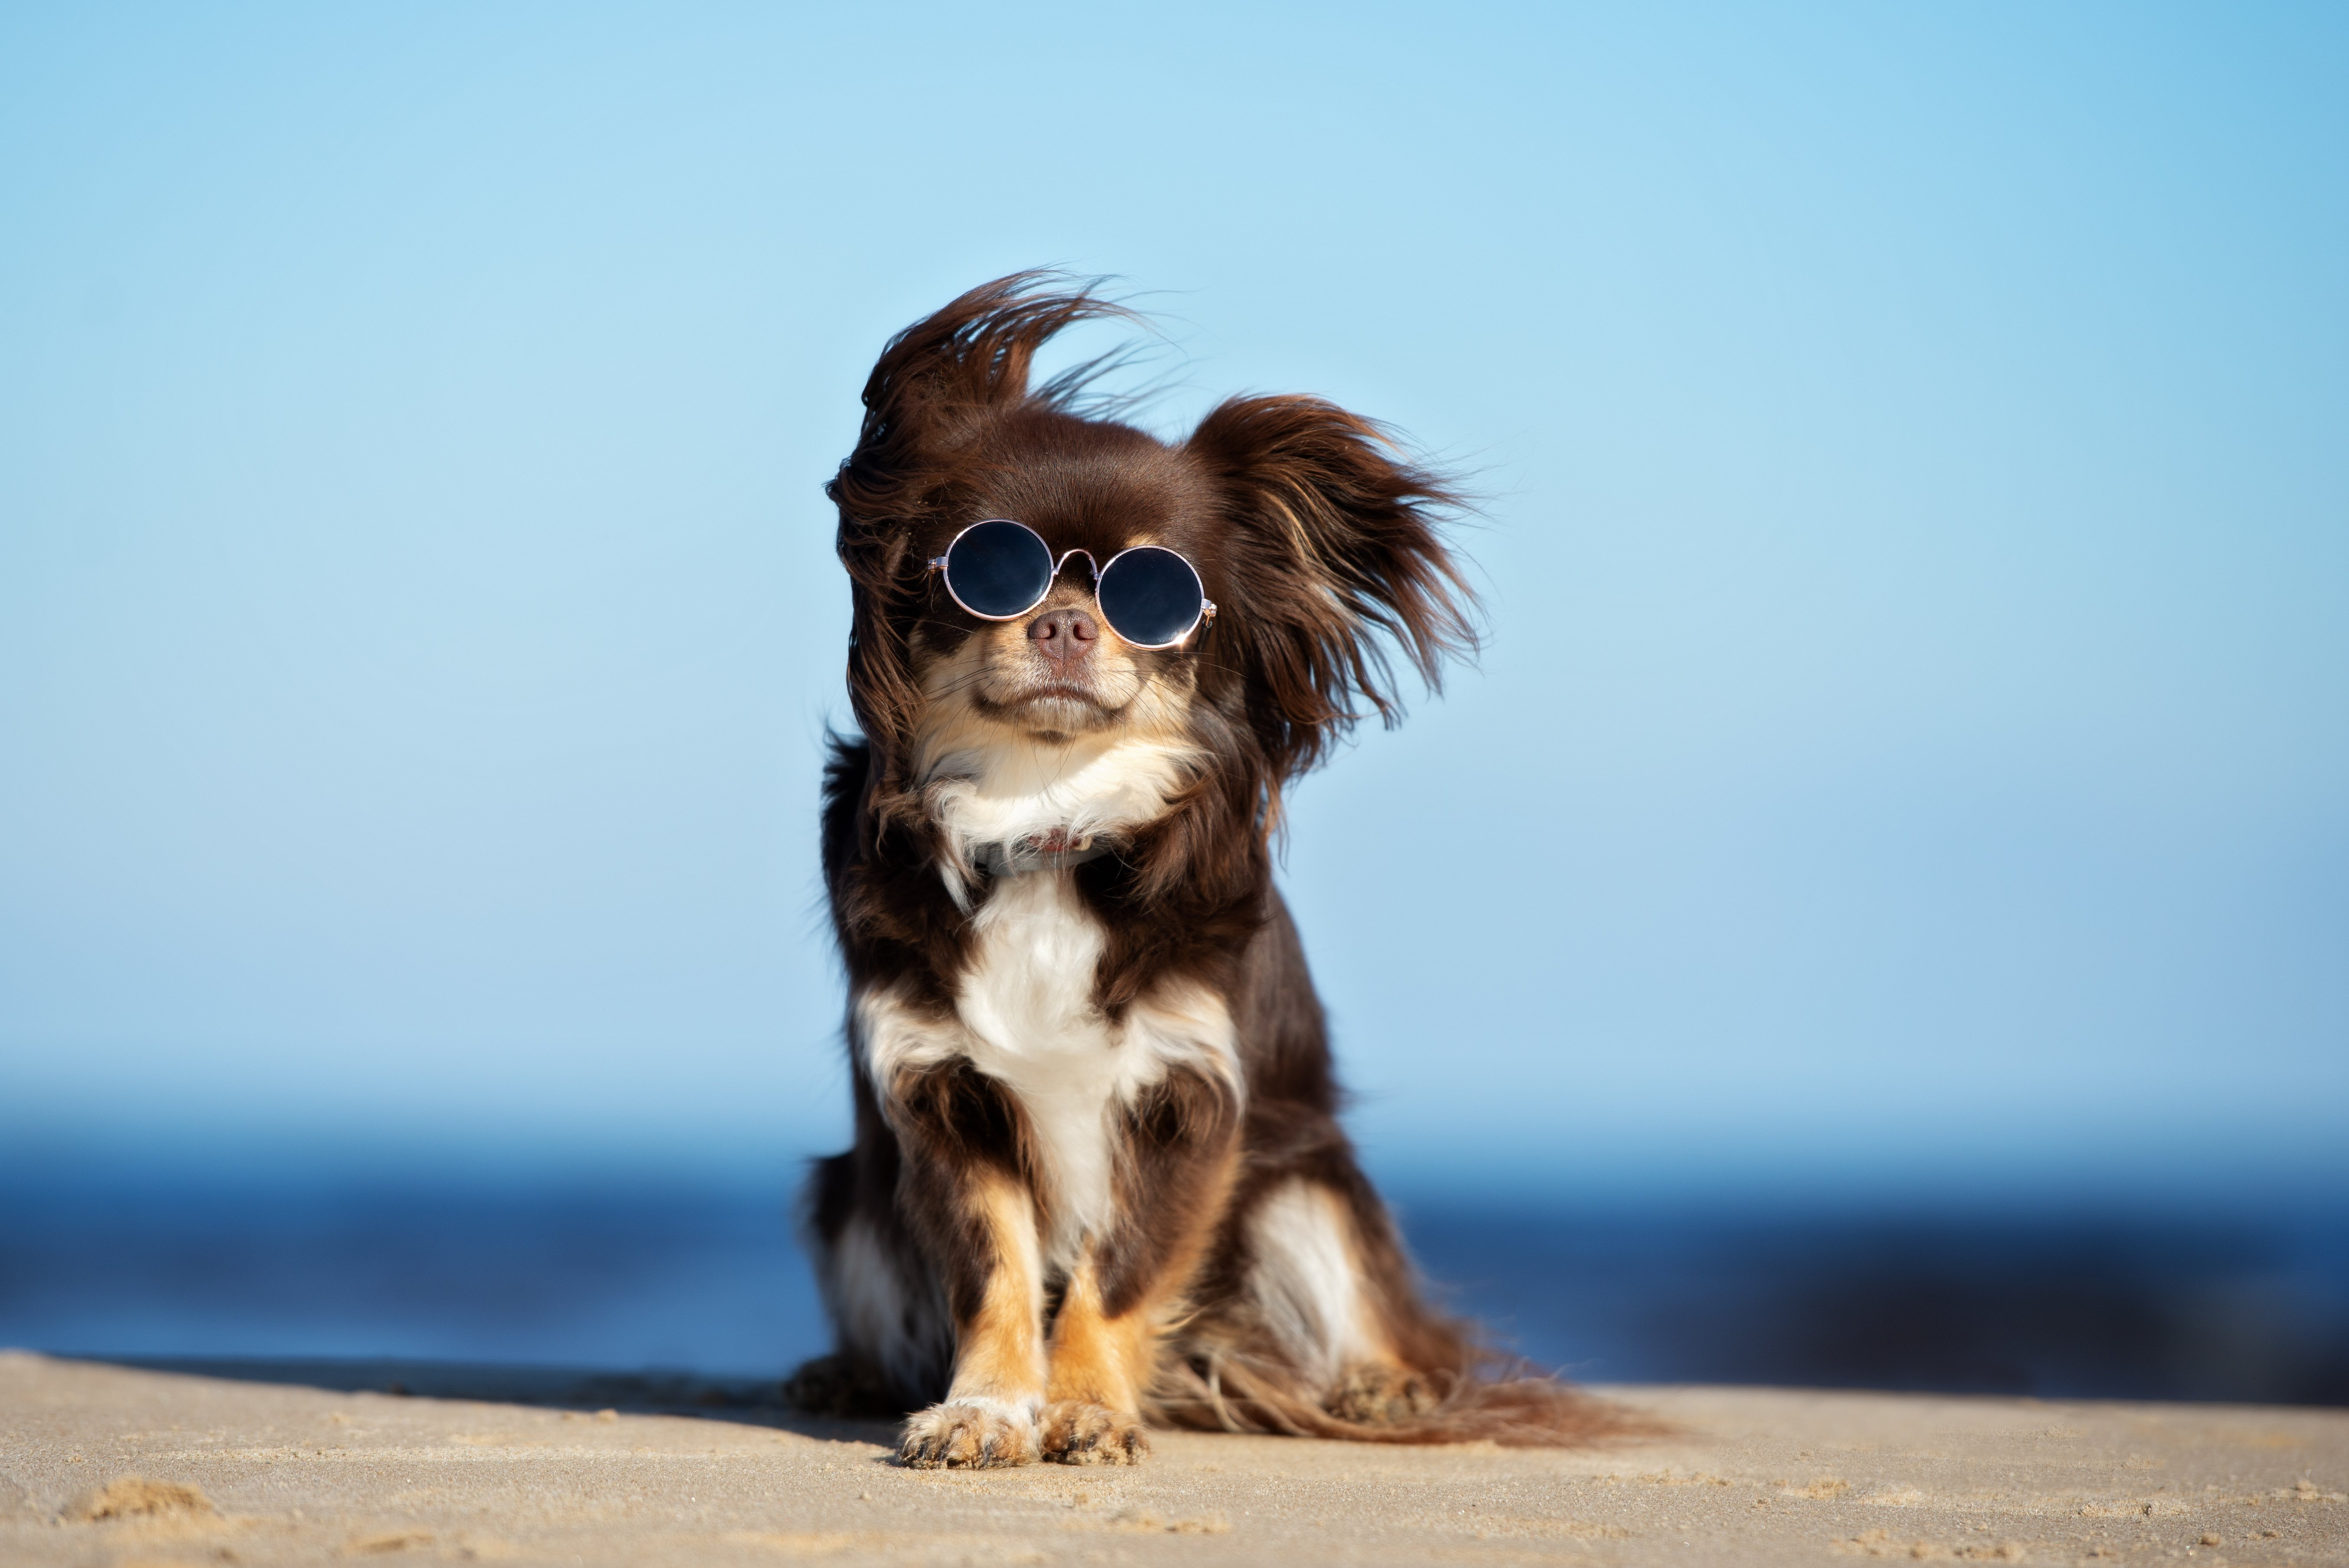 Funny Chihuahua dog posing on a beach in sunglasses | Photo: Shutterstock